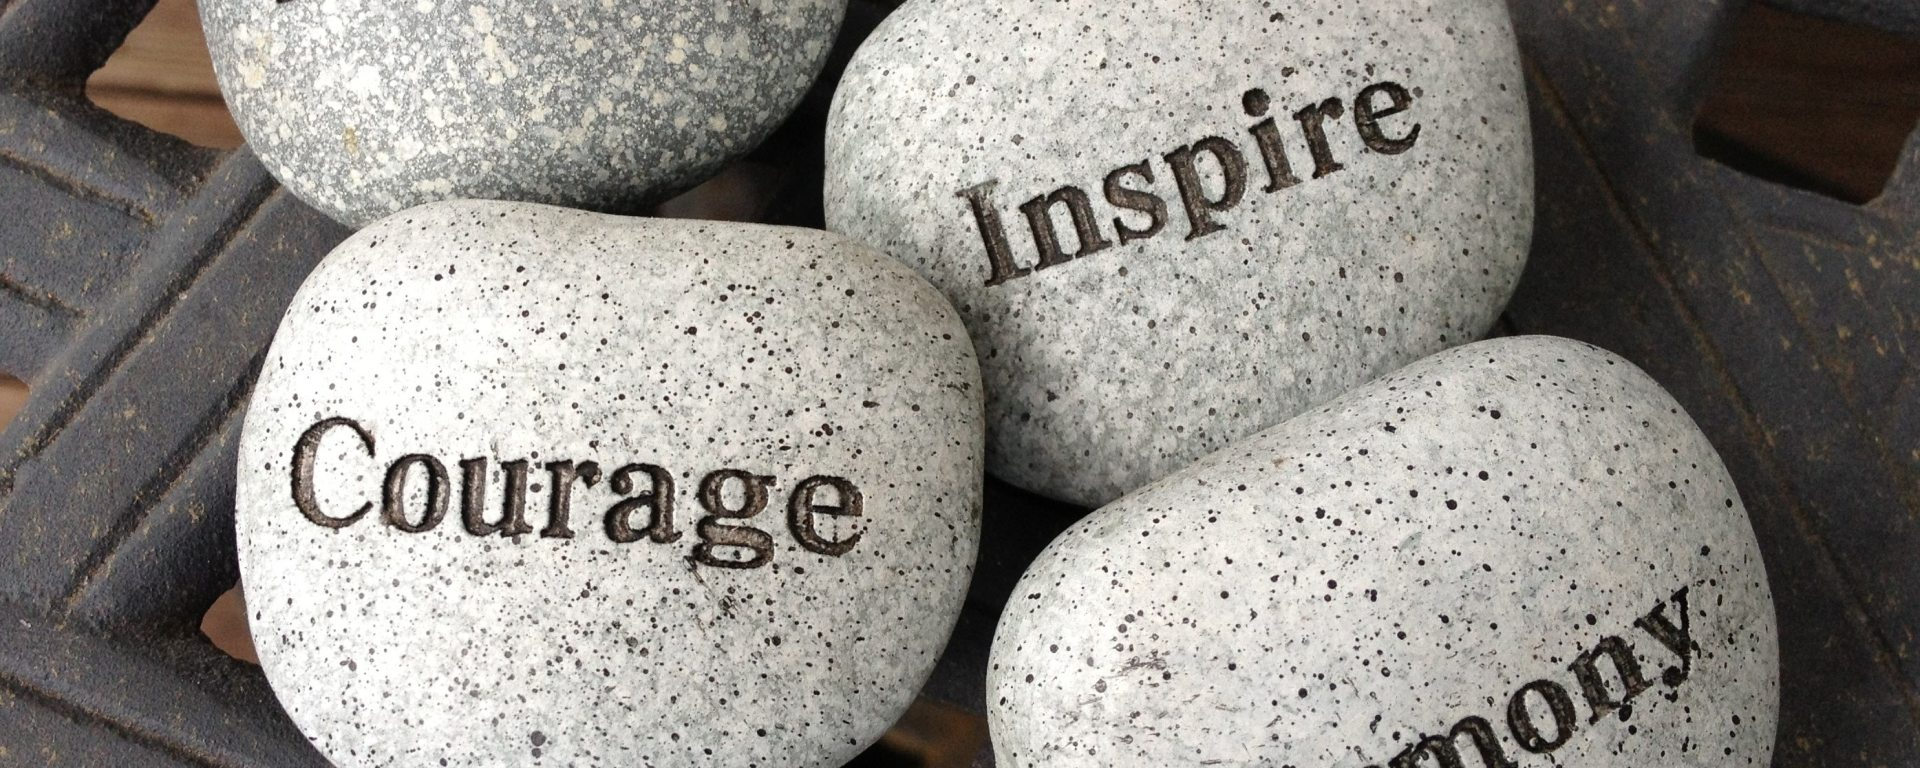 inscribed rocks saying dream courage inspire harmony on top of lattice